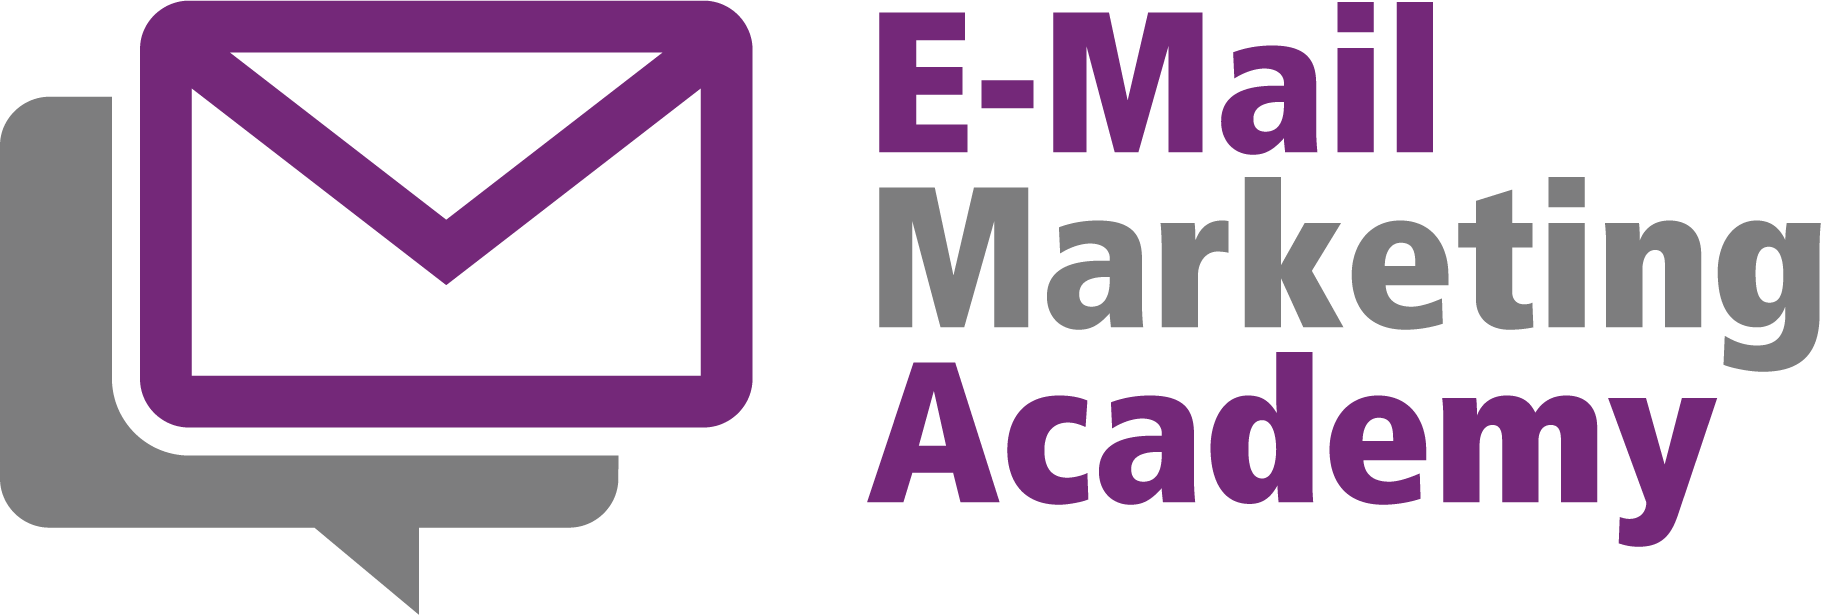 E-Mail Marketing Academy